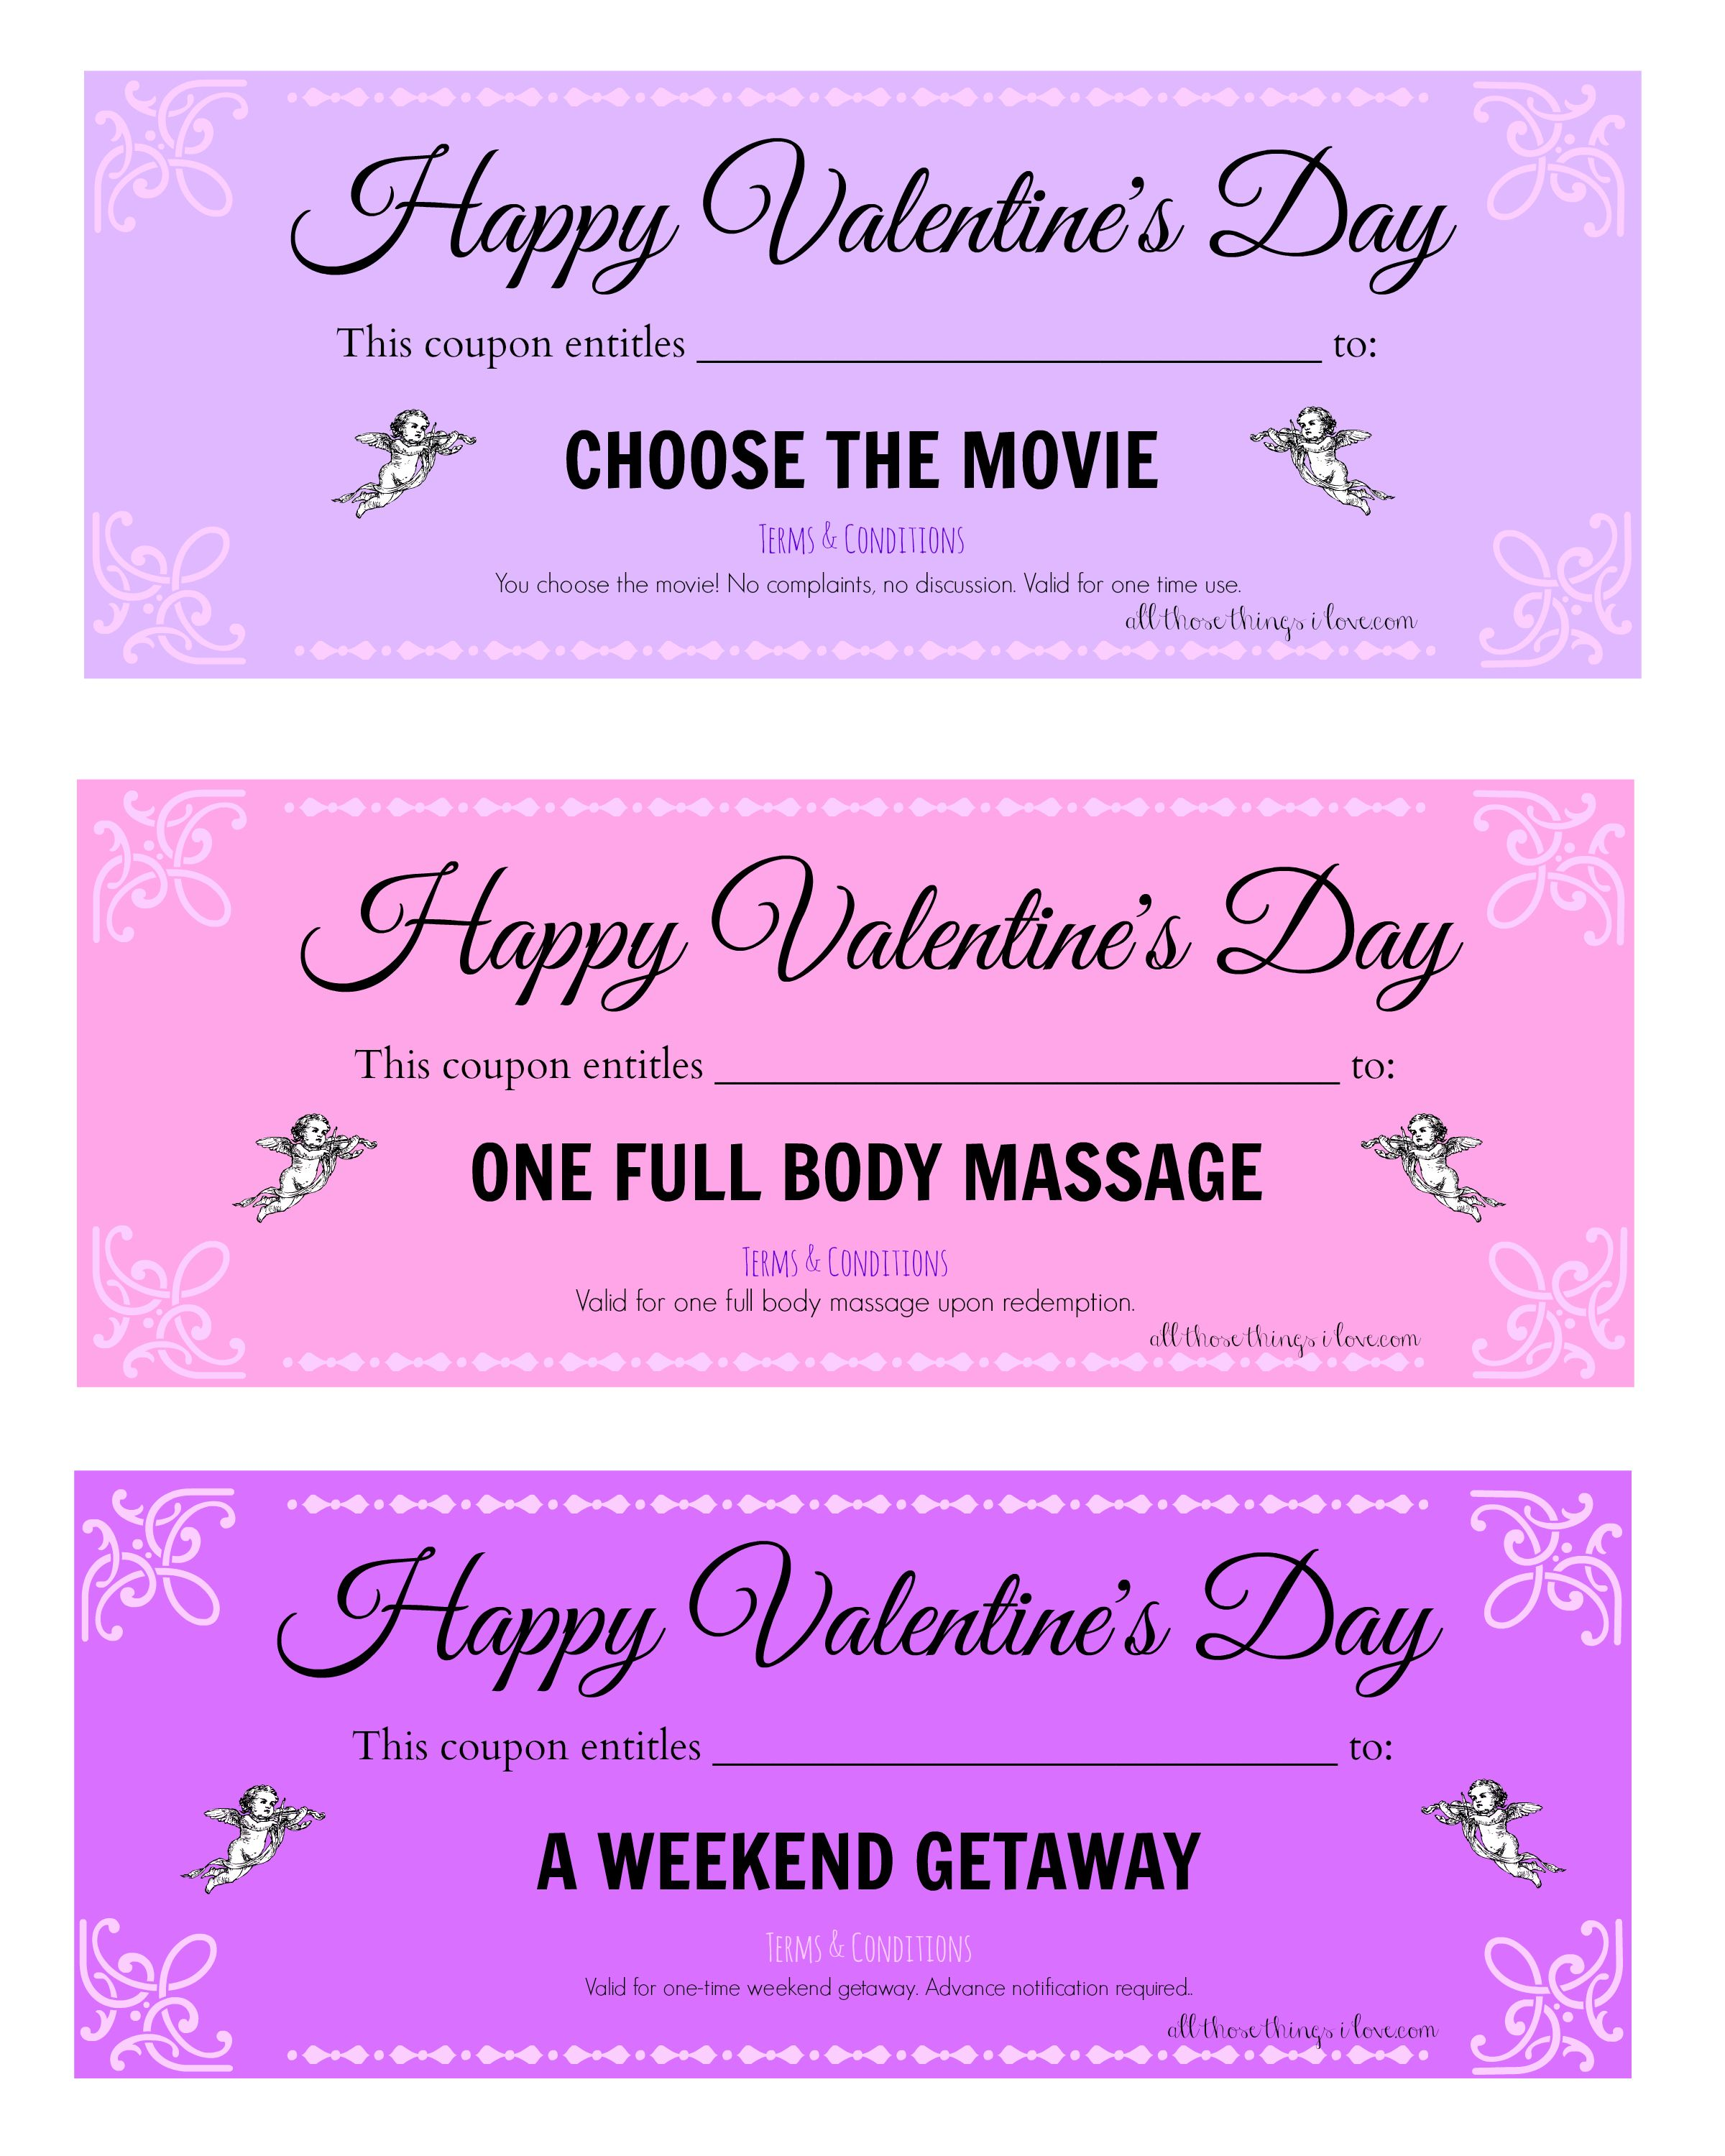 Free Valentine S Day Printable Love Coupons Valentines Coupon Book Love Coupons Free Valentine